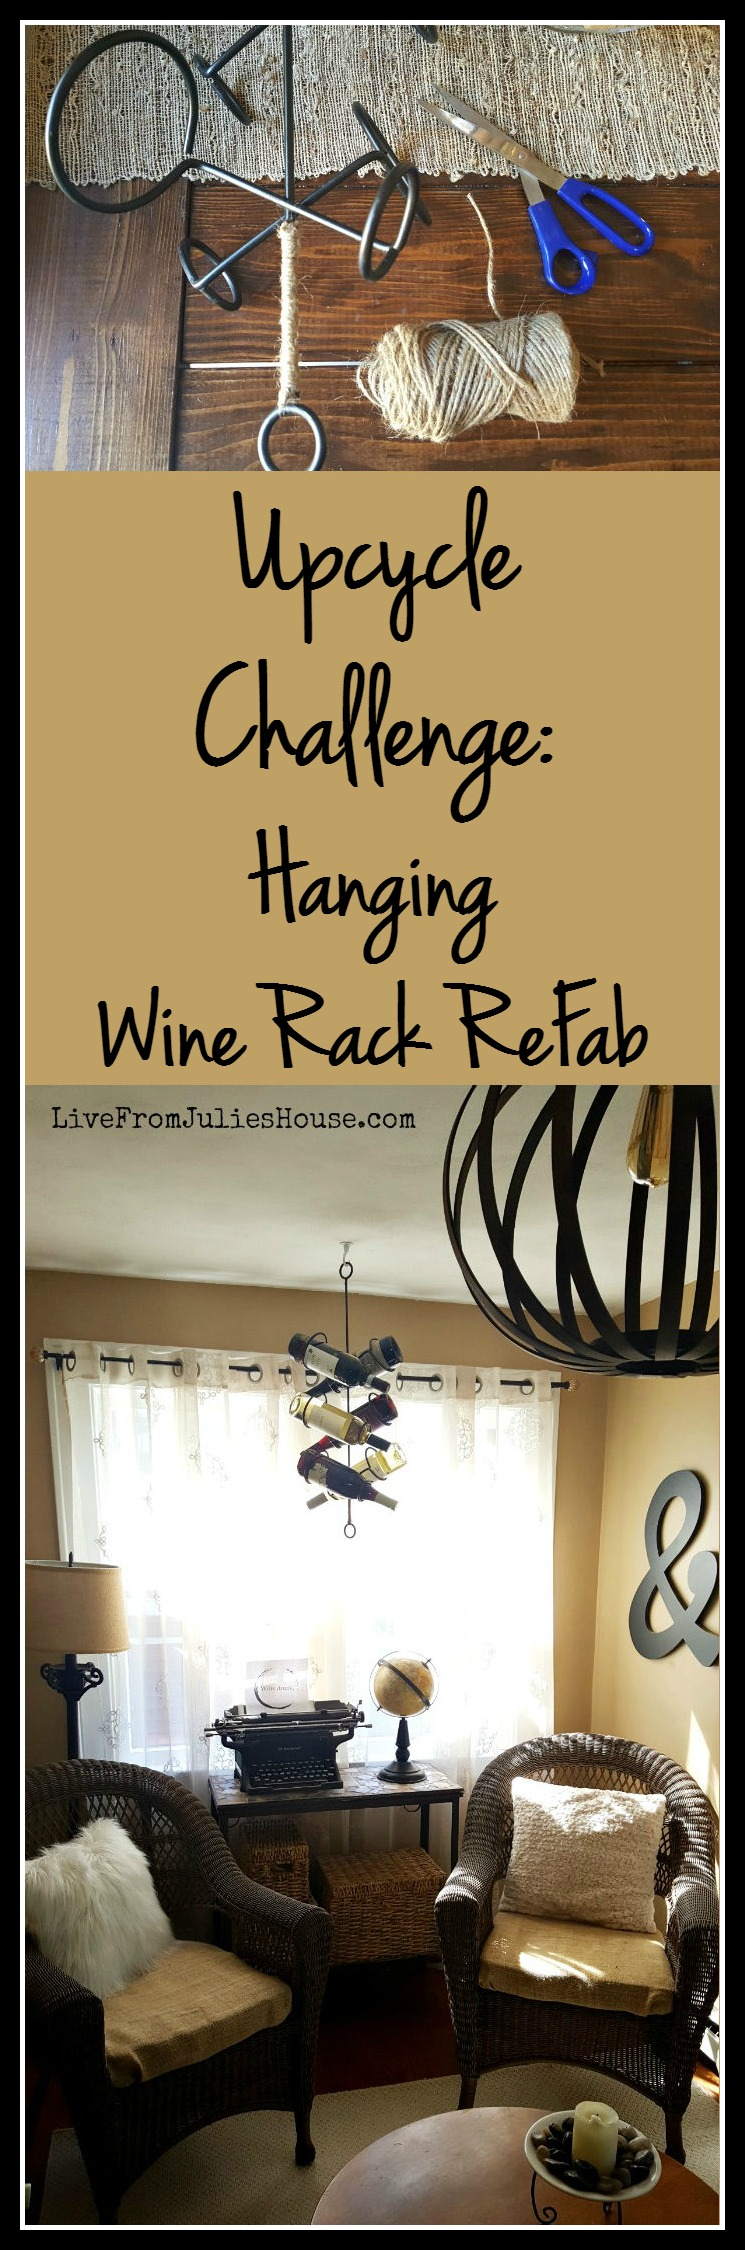 Thrift Store Decor Upcycle Challenge: Hanging Wine Rack ReFab - For this month's Upcycle Challenge, I spruced up a hanging wine rack that I picked up for just $3.99 at my favorite thrift store.